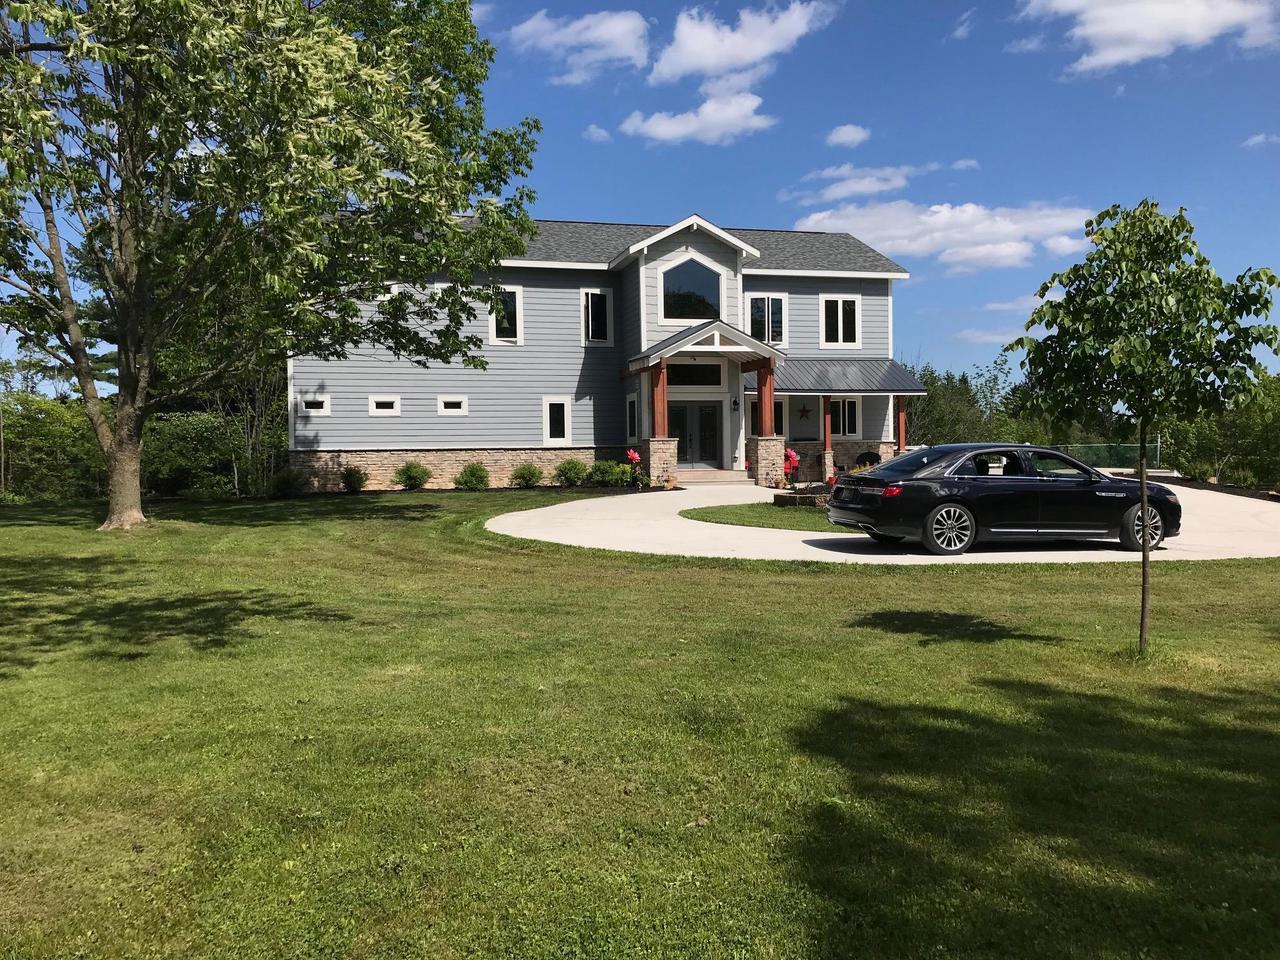 Beautiful 2015 custom designed home located in Town of Sheboygan (desirable Kohler School District) on forested land at end of Greendale Rd. Option to subdivide per CSM up to 3 additional lots (sewer & water installed). Addl. commercial land avail. = over 20 ac. Open area suitable for horses, w/ zoning approval. Orchards abut conservancy. Willow Creek, class 2 Trout Stream, runs on south side of property. Parcel(s) combined are a rare island of privacy. LL is 80% complete w/ construction material incl. 2nd kitchen, sauna/steam shower (could be mother-in-law suite). 100% heated tile throughout. Stake your claim on this rare find within the Town of Sheboygan (low taxes). All parcels within Kohler School District & has all municipal svcs.